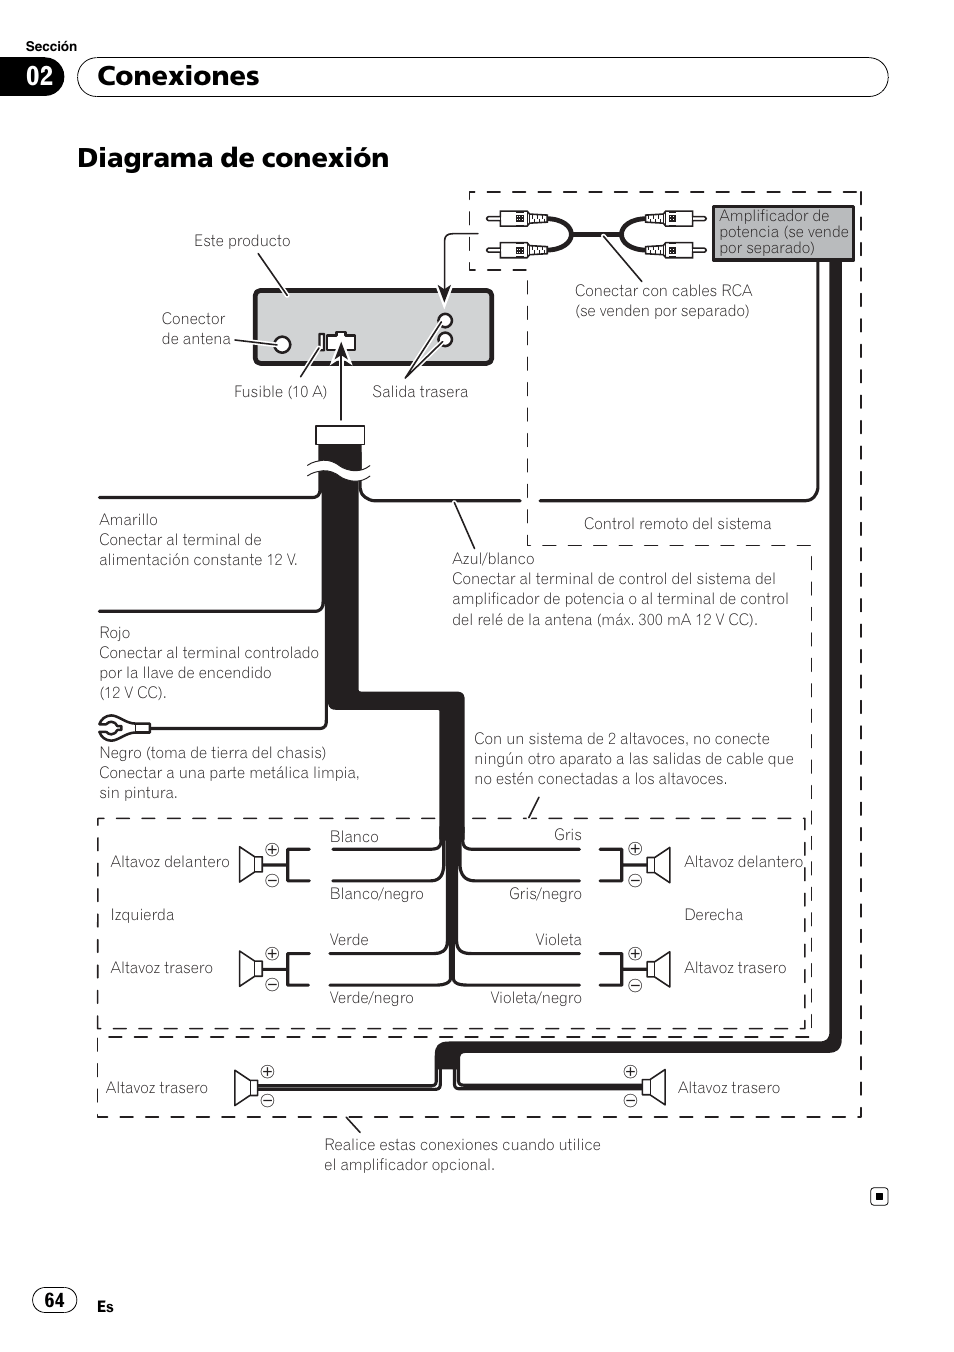 pioneer deh 2200ub page64?resize\=665%2C942 diagrams 457274 pioneer deh p4000ub wiring diagram pioneer deh deh p4000ub wiring diagram at fashall.co